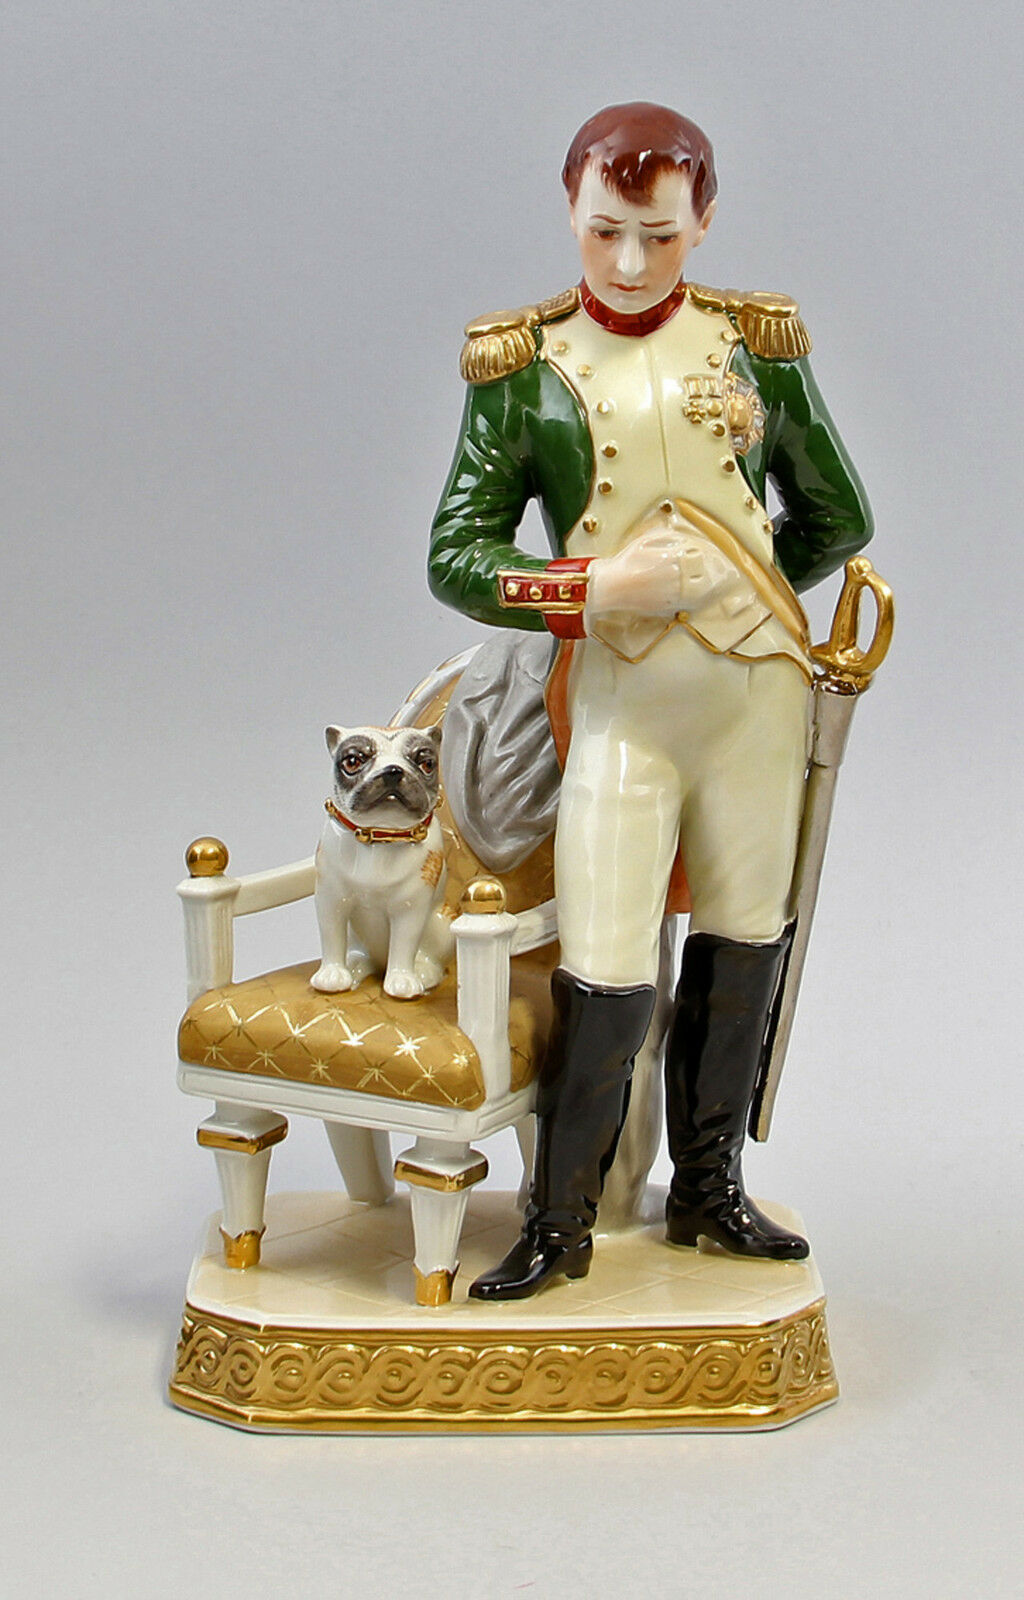 Kämmer-Porcelain  Figure Napoleon with Mops Height H24CM a3-44190